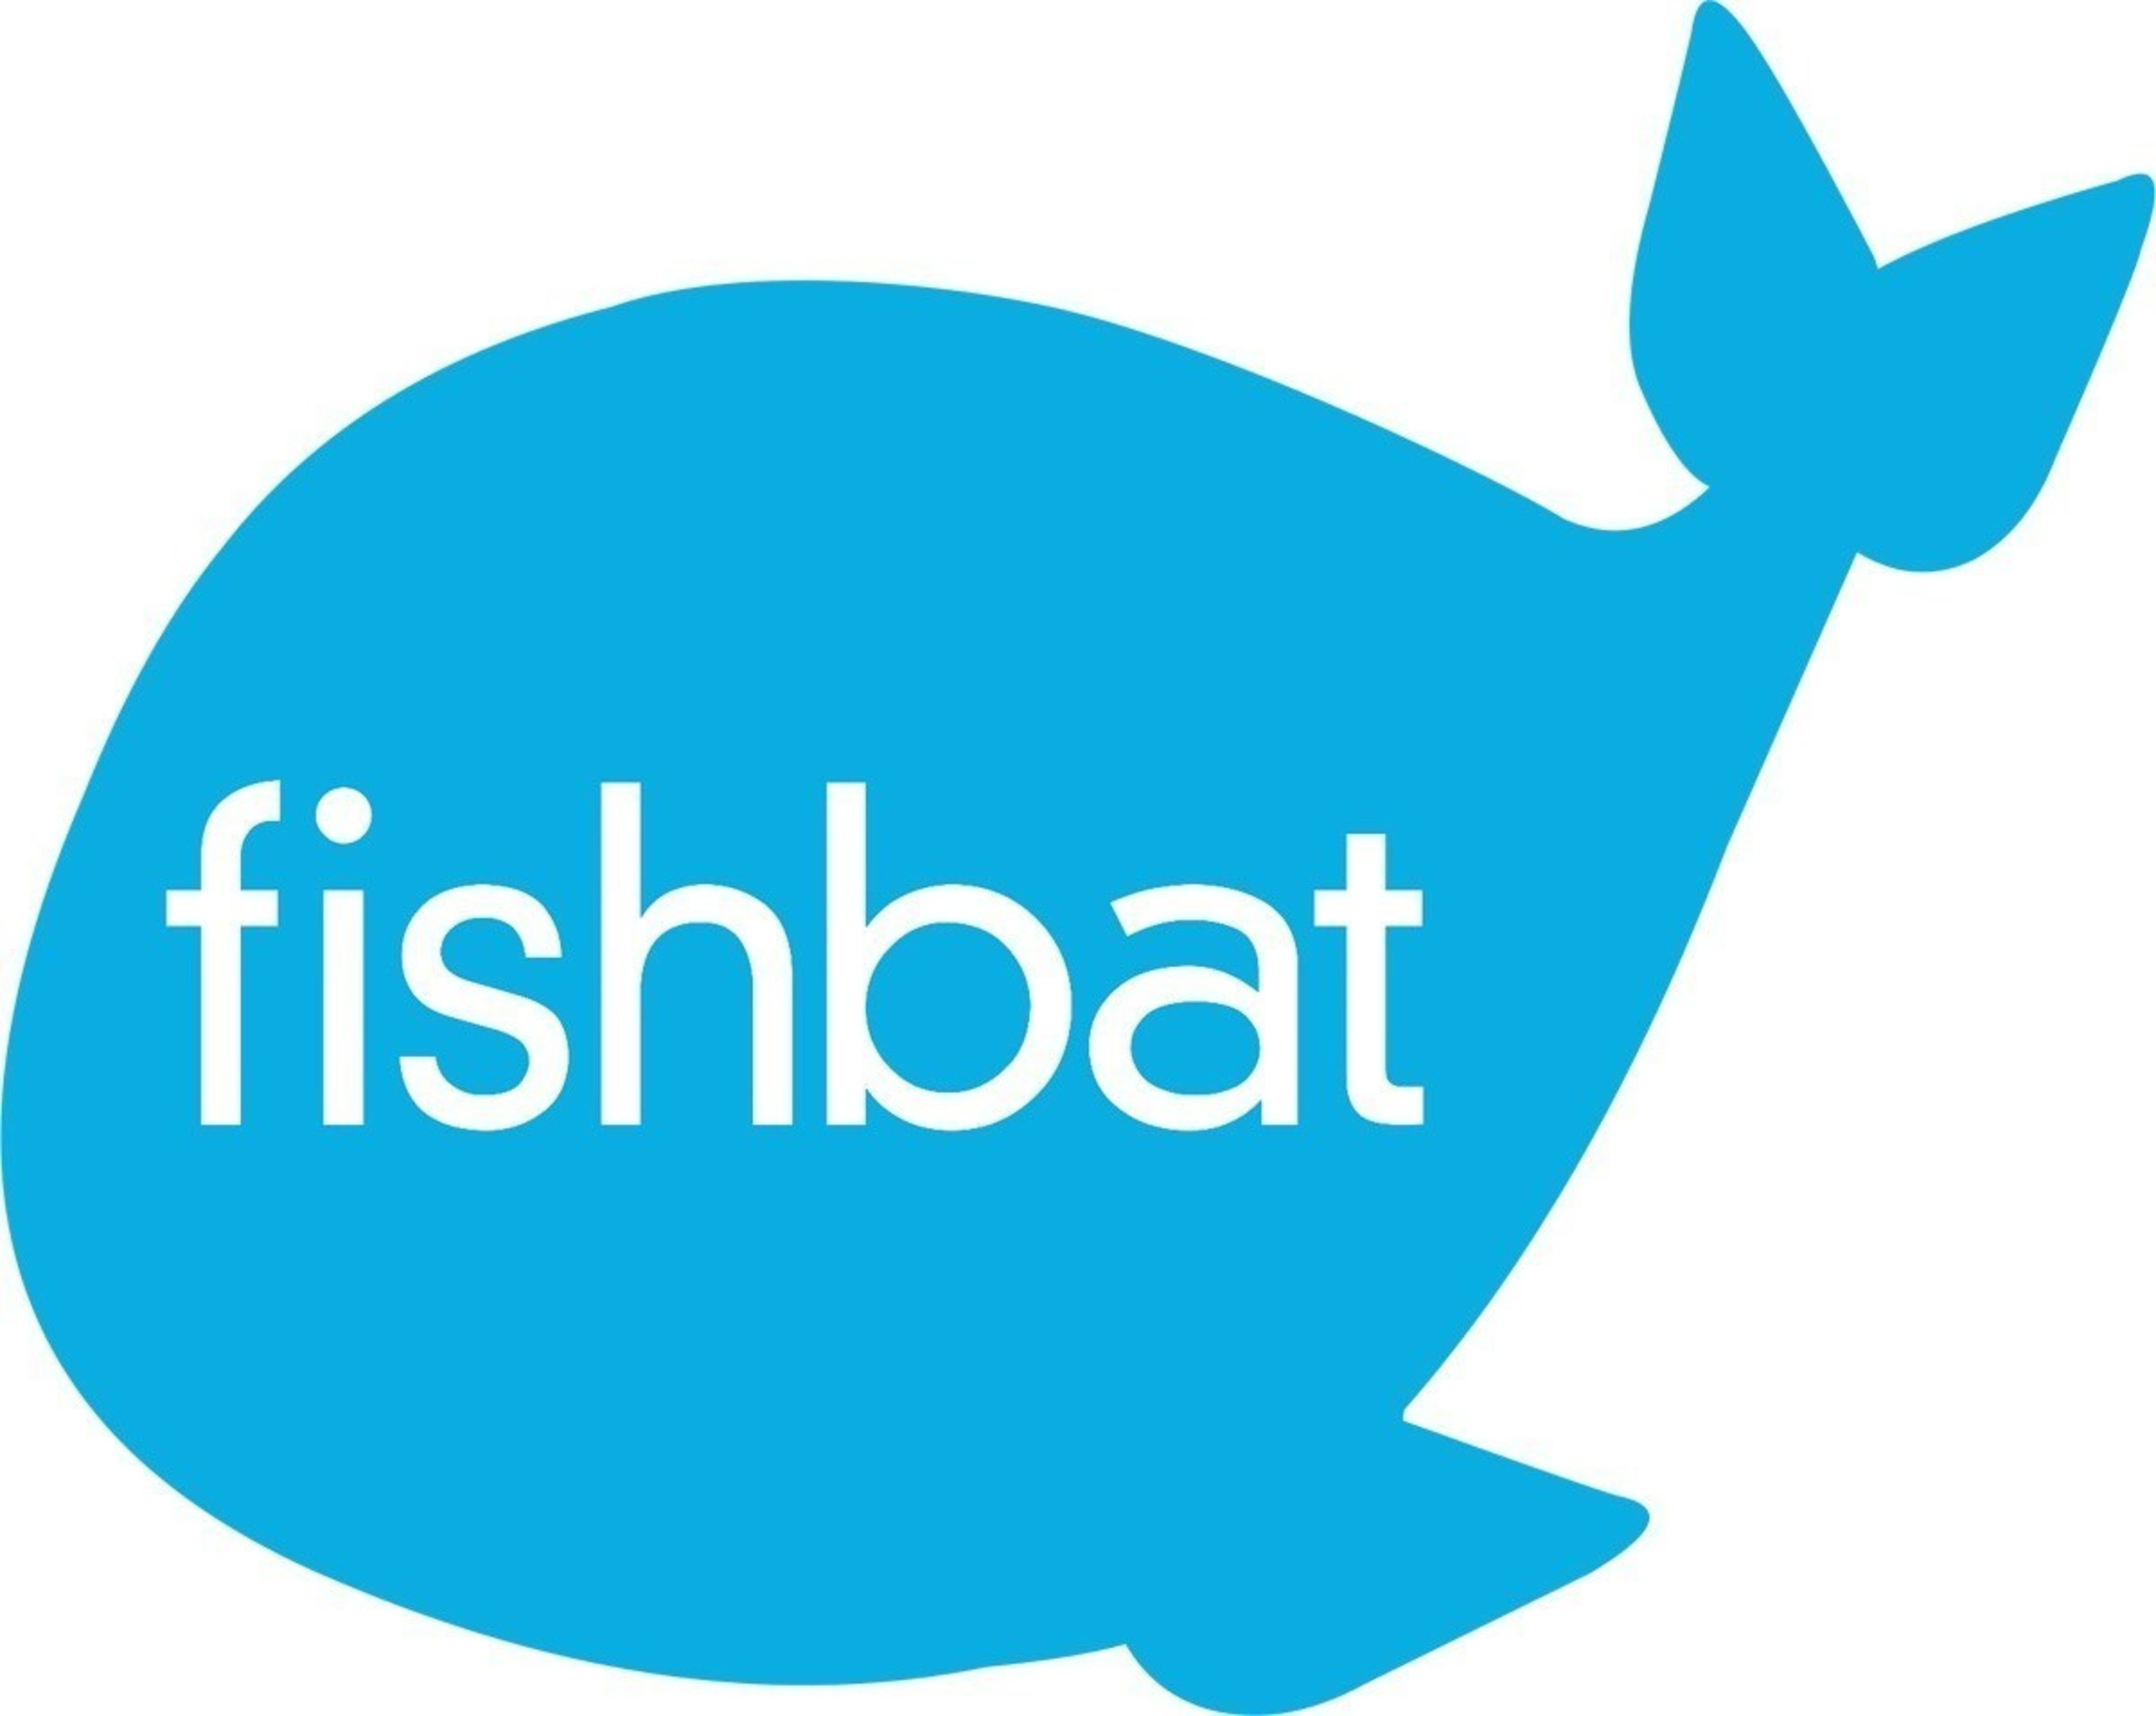 fishbat Twitter Director Taylor Lawsh' Answers 3 Questions about the Uproar Over New Twitter Changes